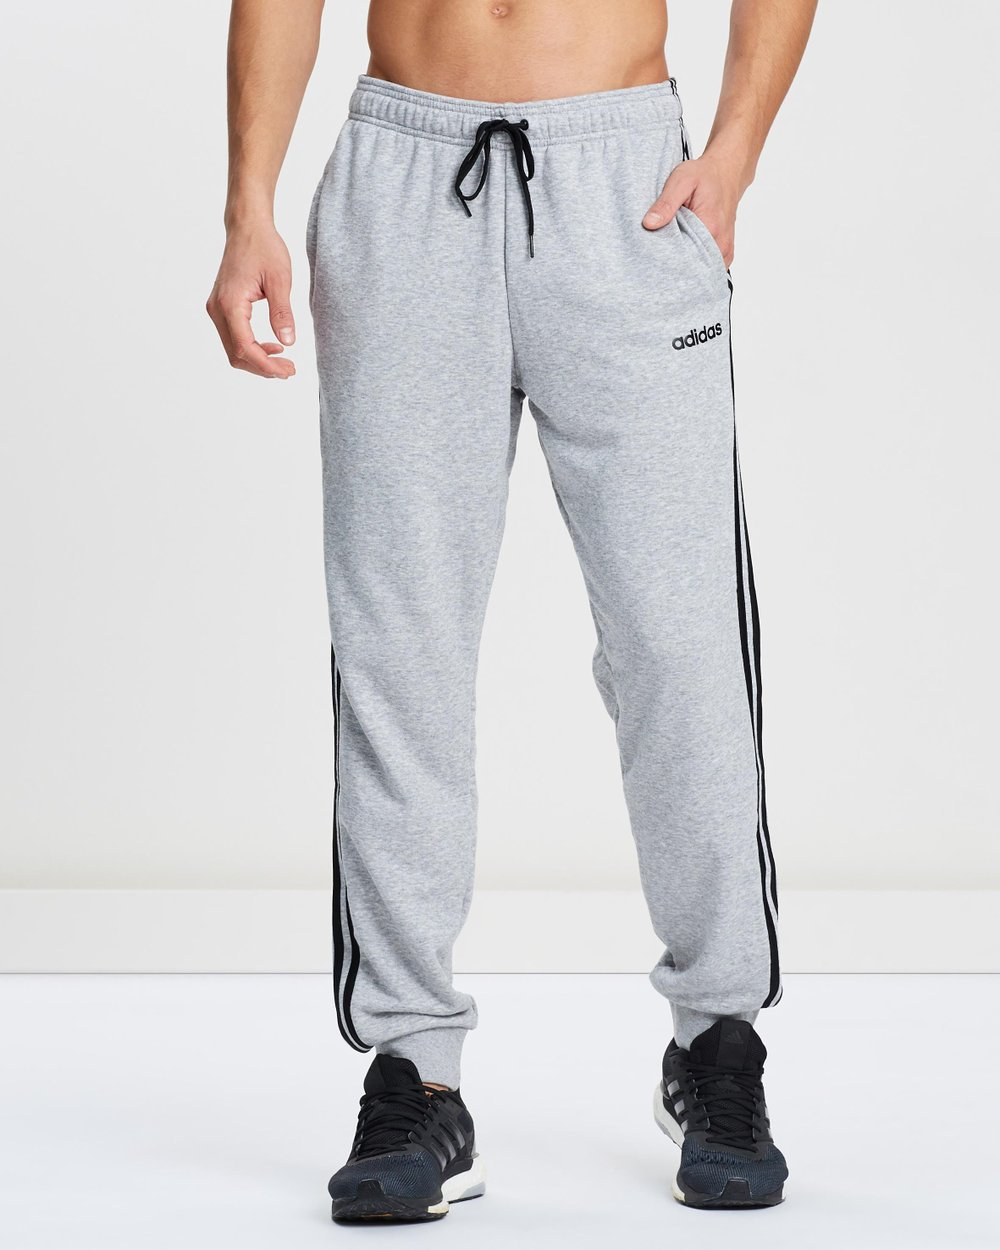 a8fed3b4e17c8 Essentials 3-Stripes Tapered Cuffed Pants by adidas Performance Online |  THE ICONIC | Australia